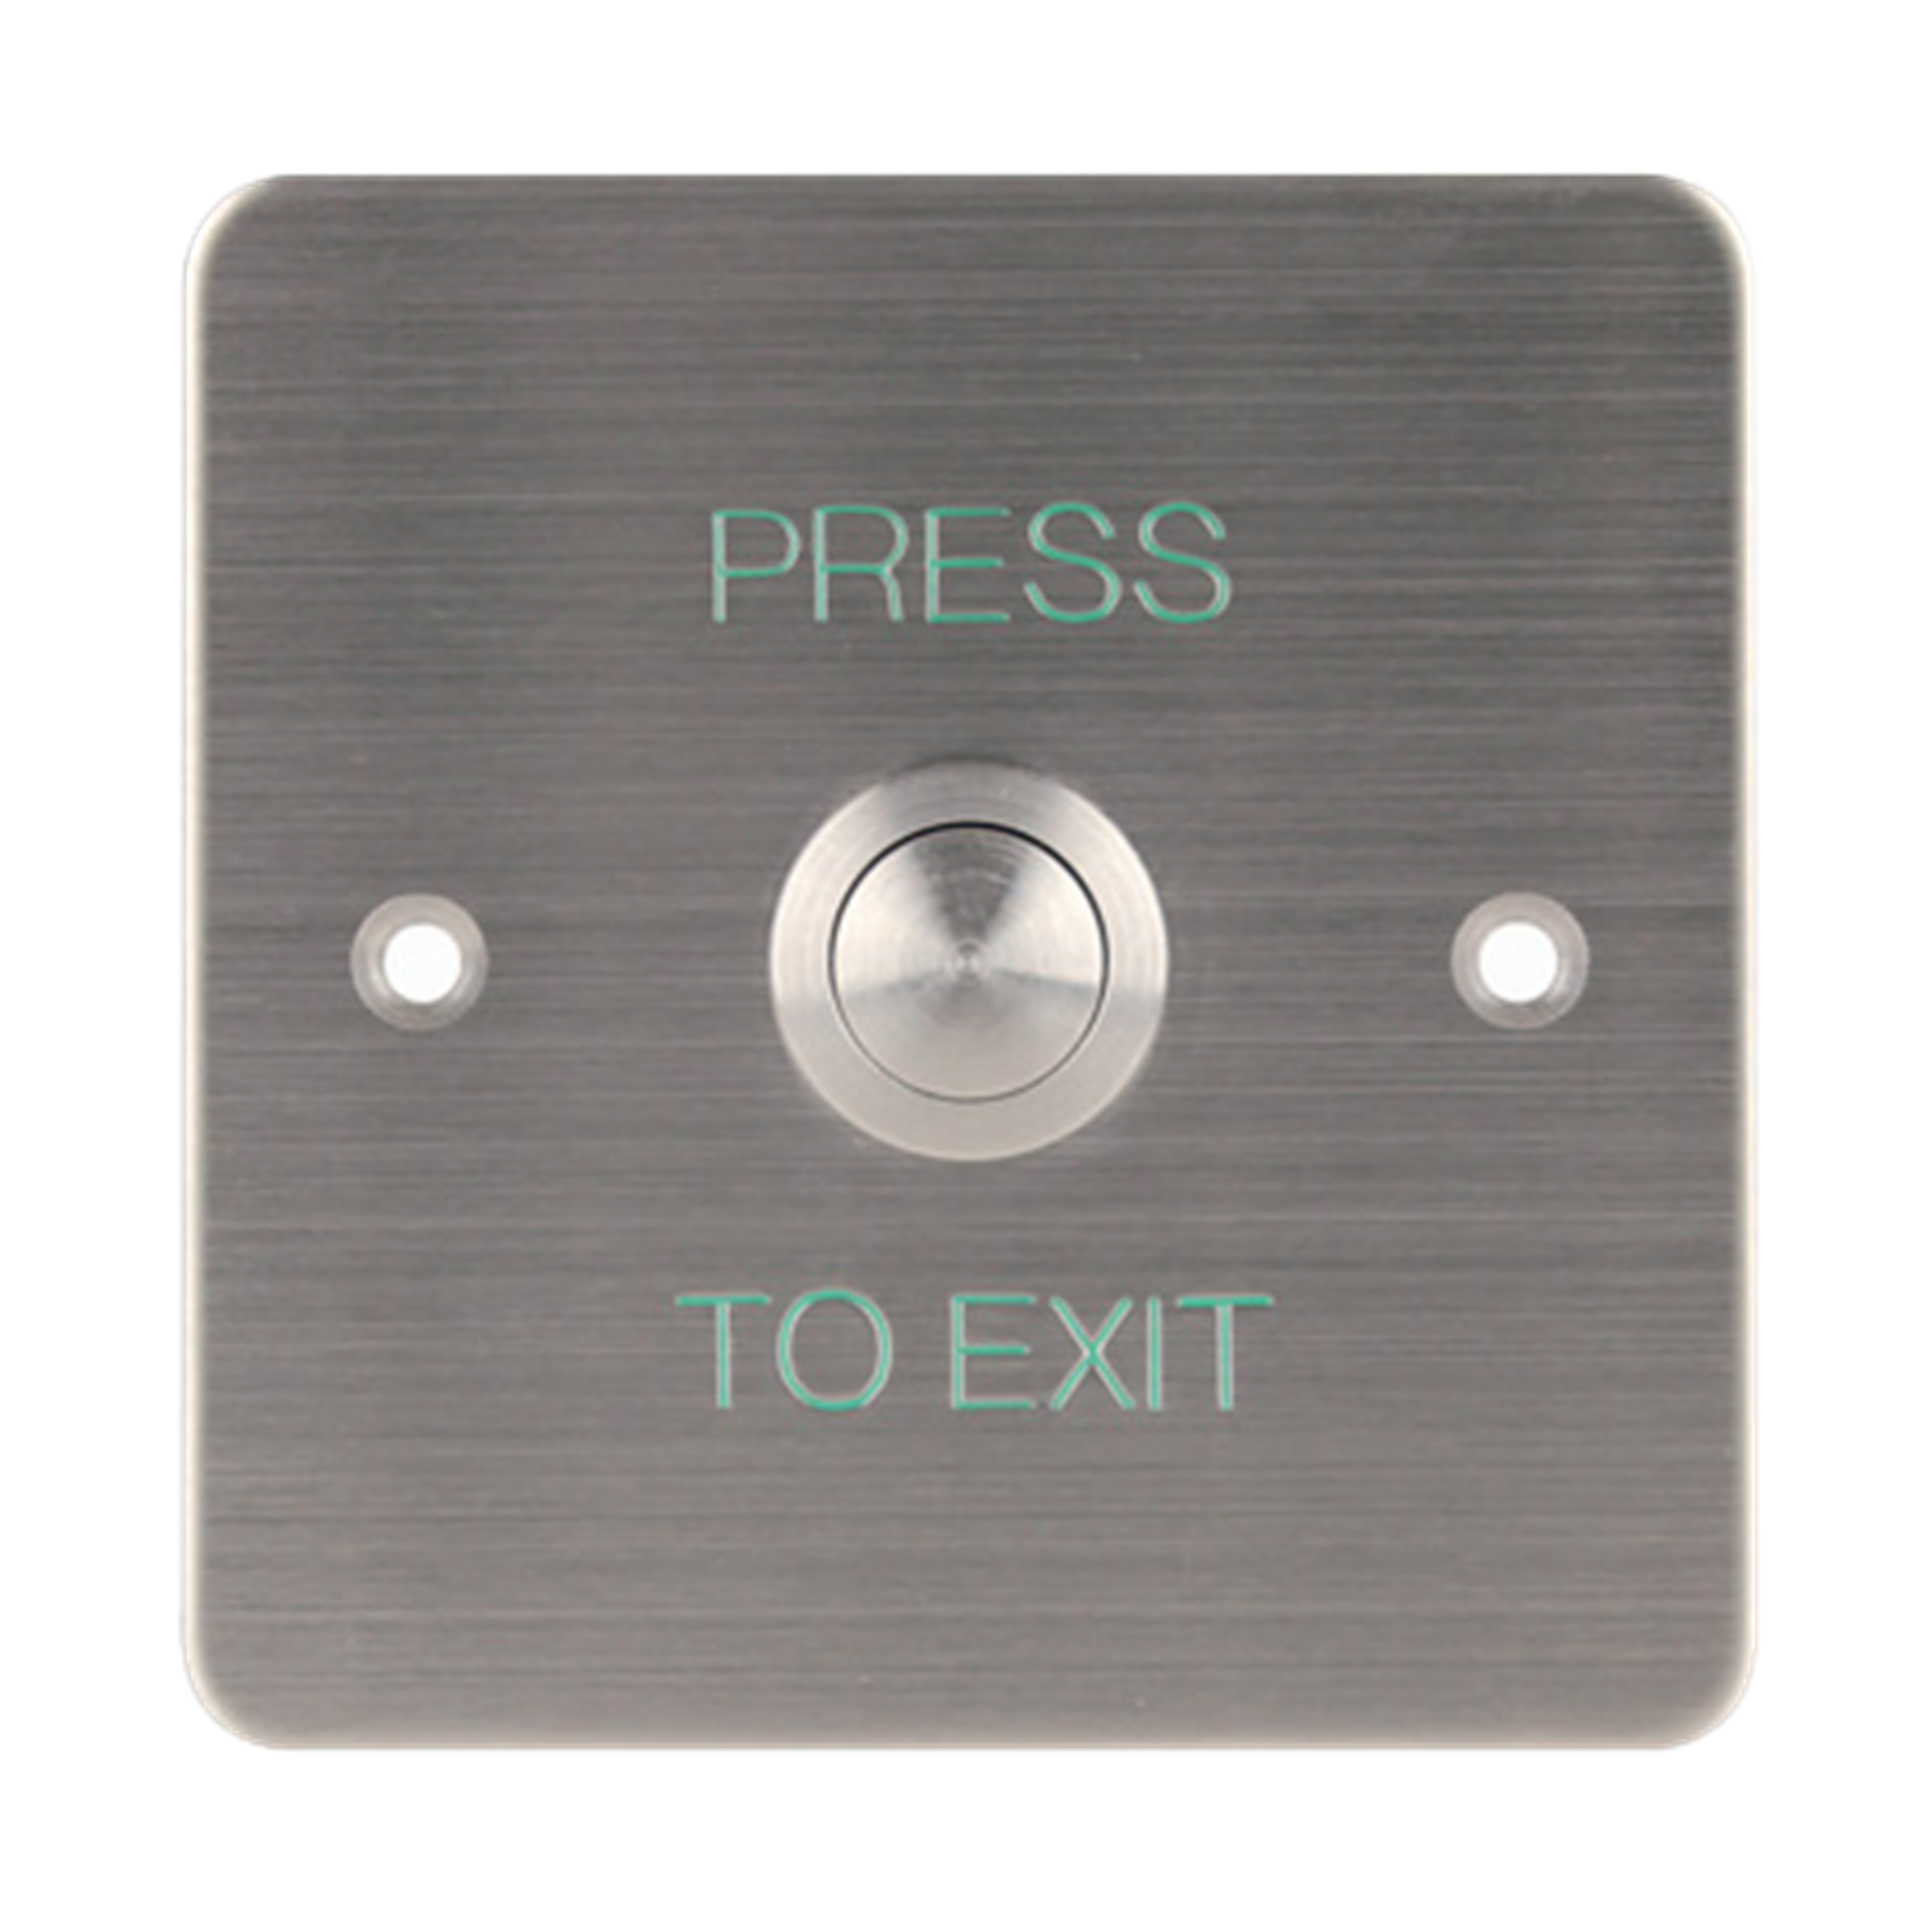 ESP EVEXIT Flush 12vDC EXIT Button Stainless Steel